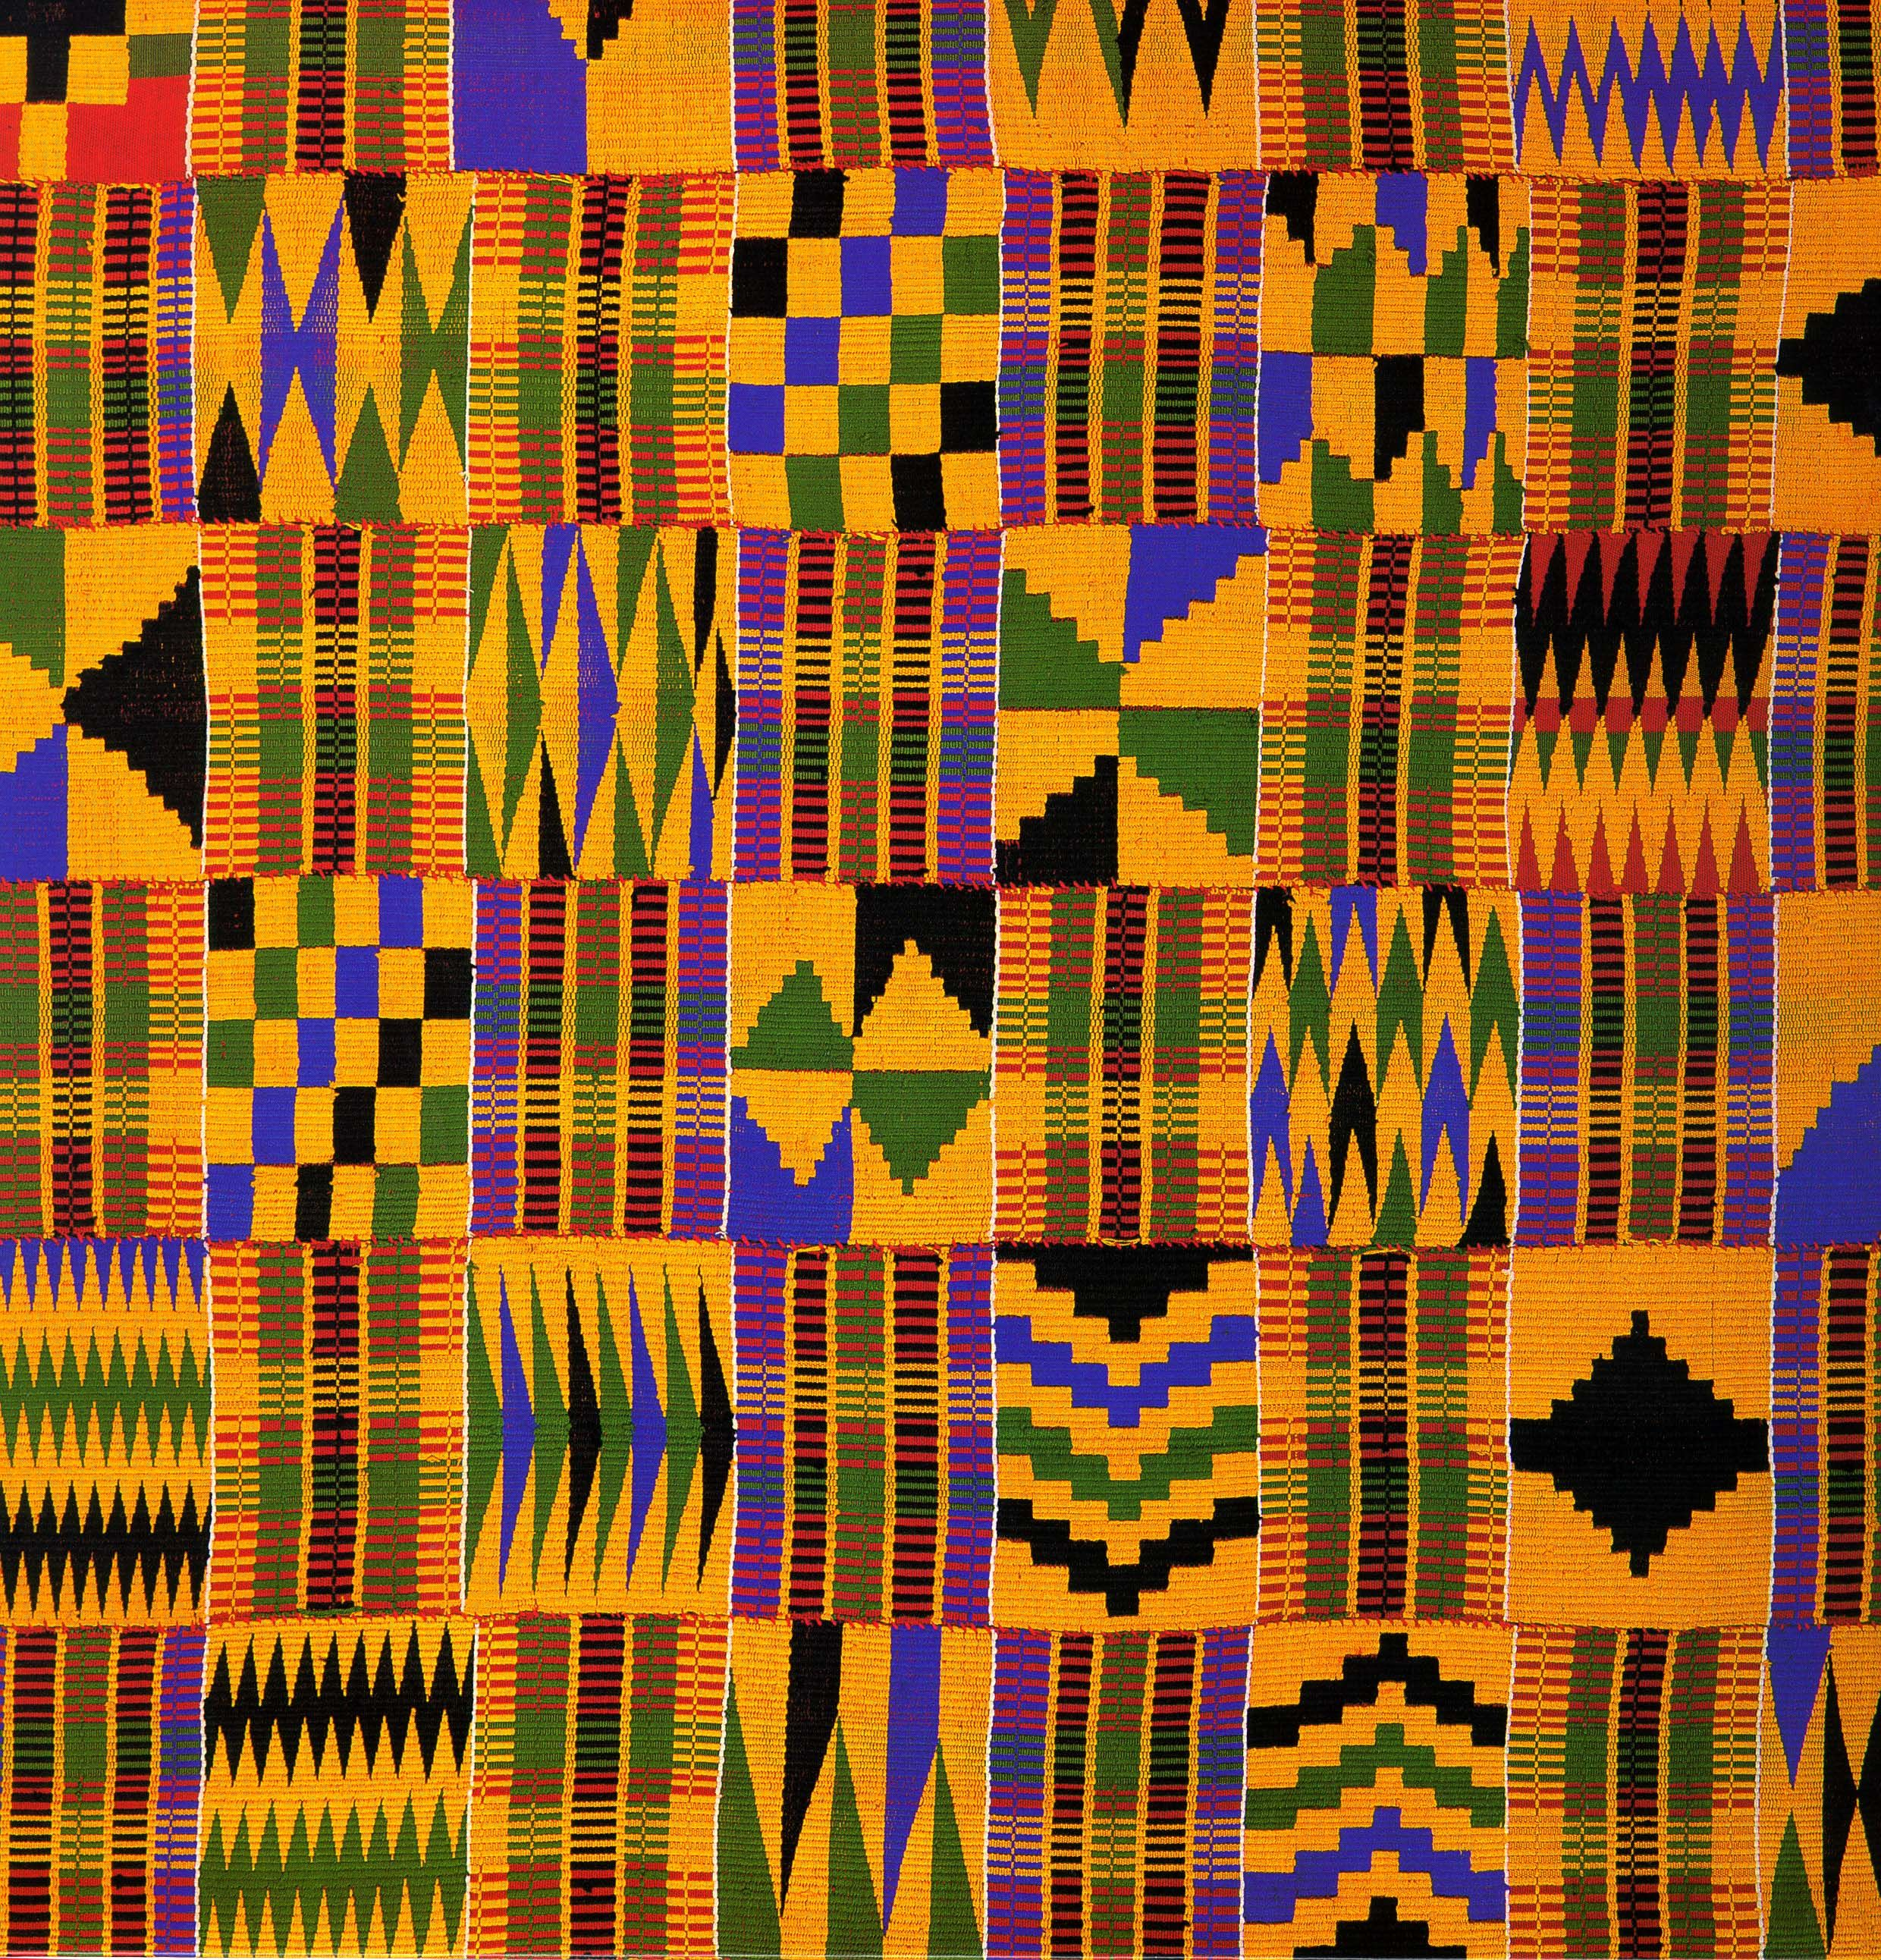 African-american dating african ghana quilts for sale